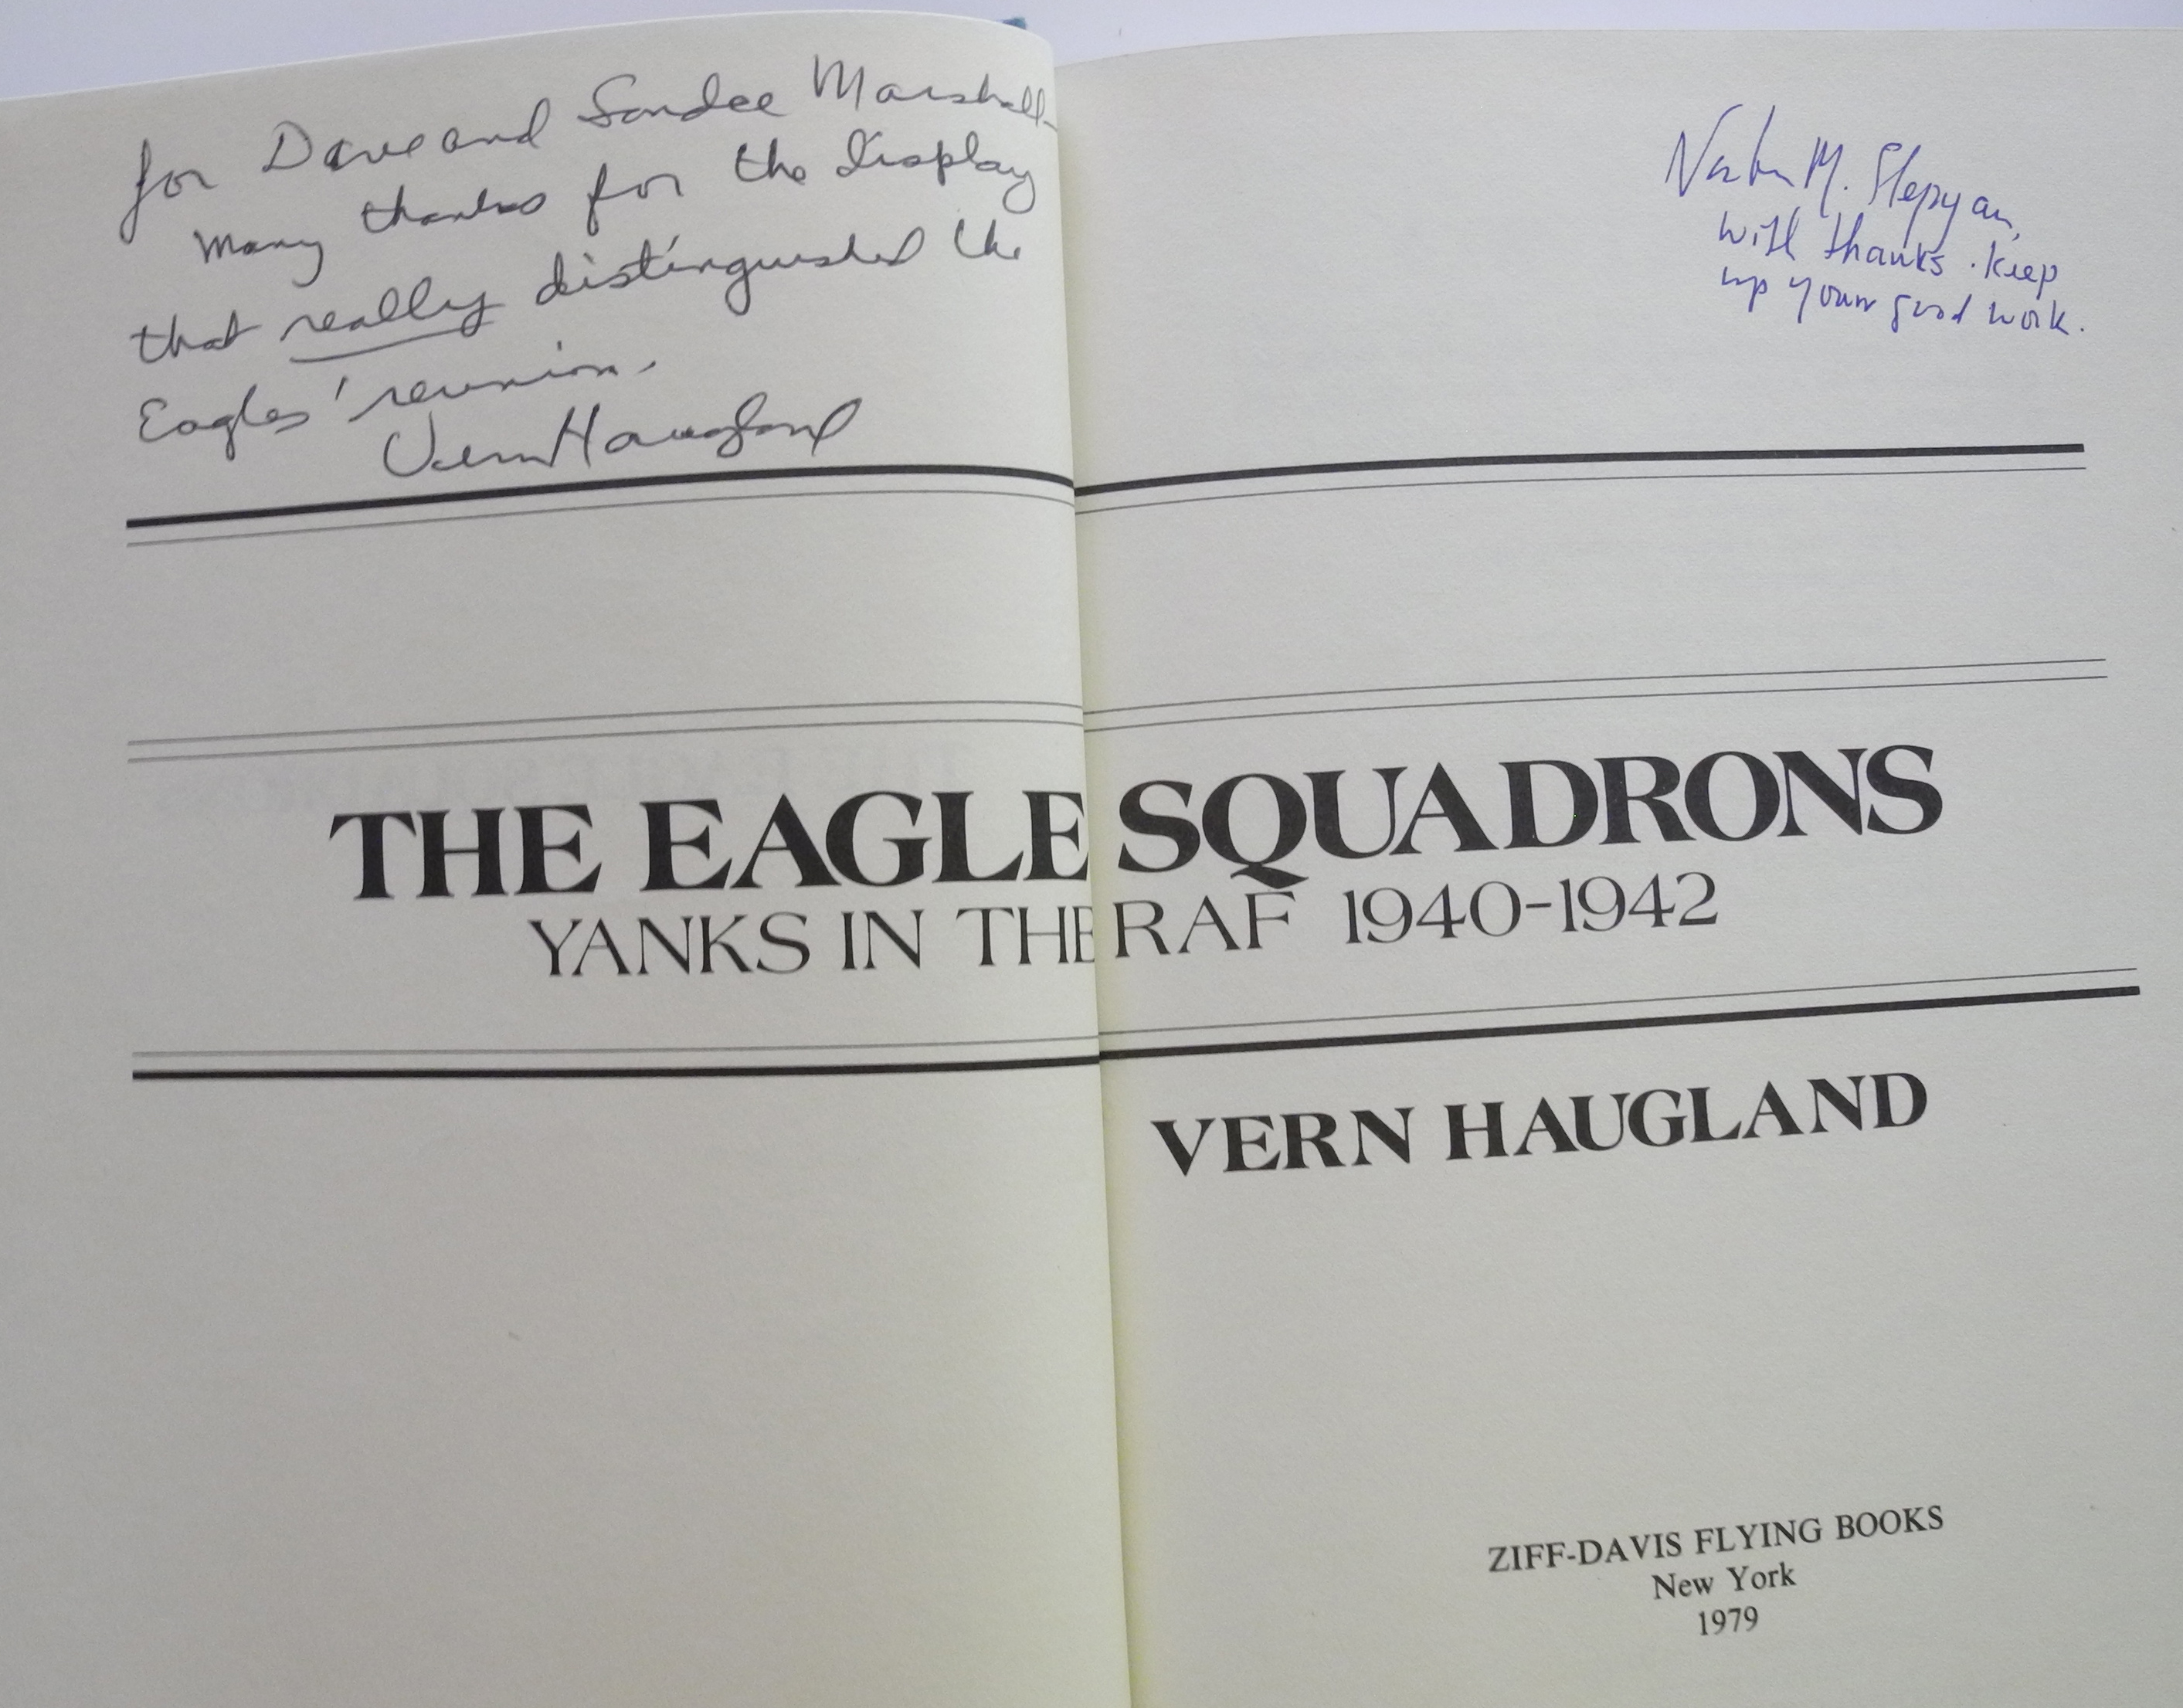 Eagles Squadrons signed book